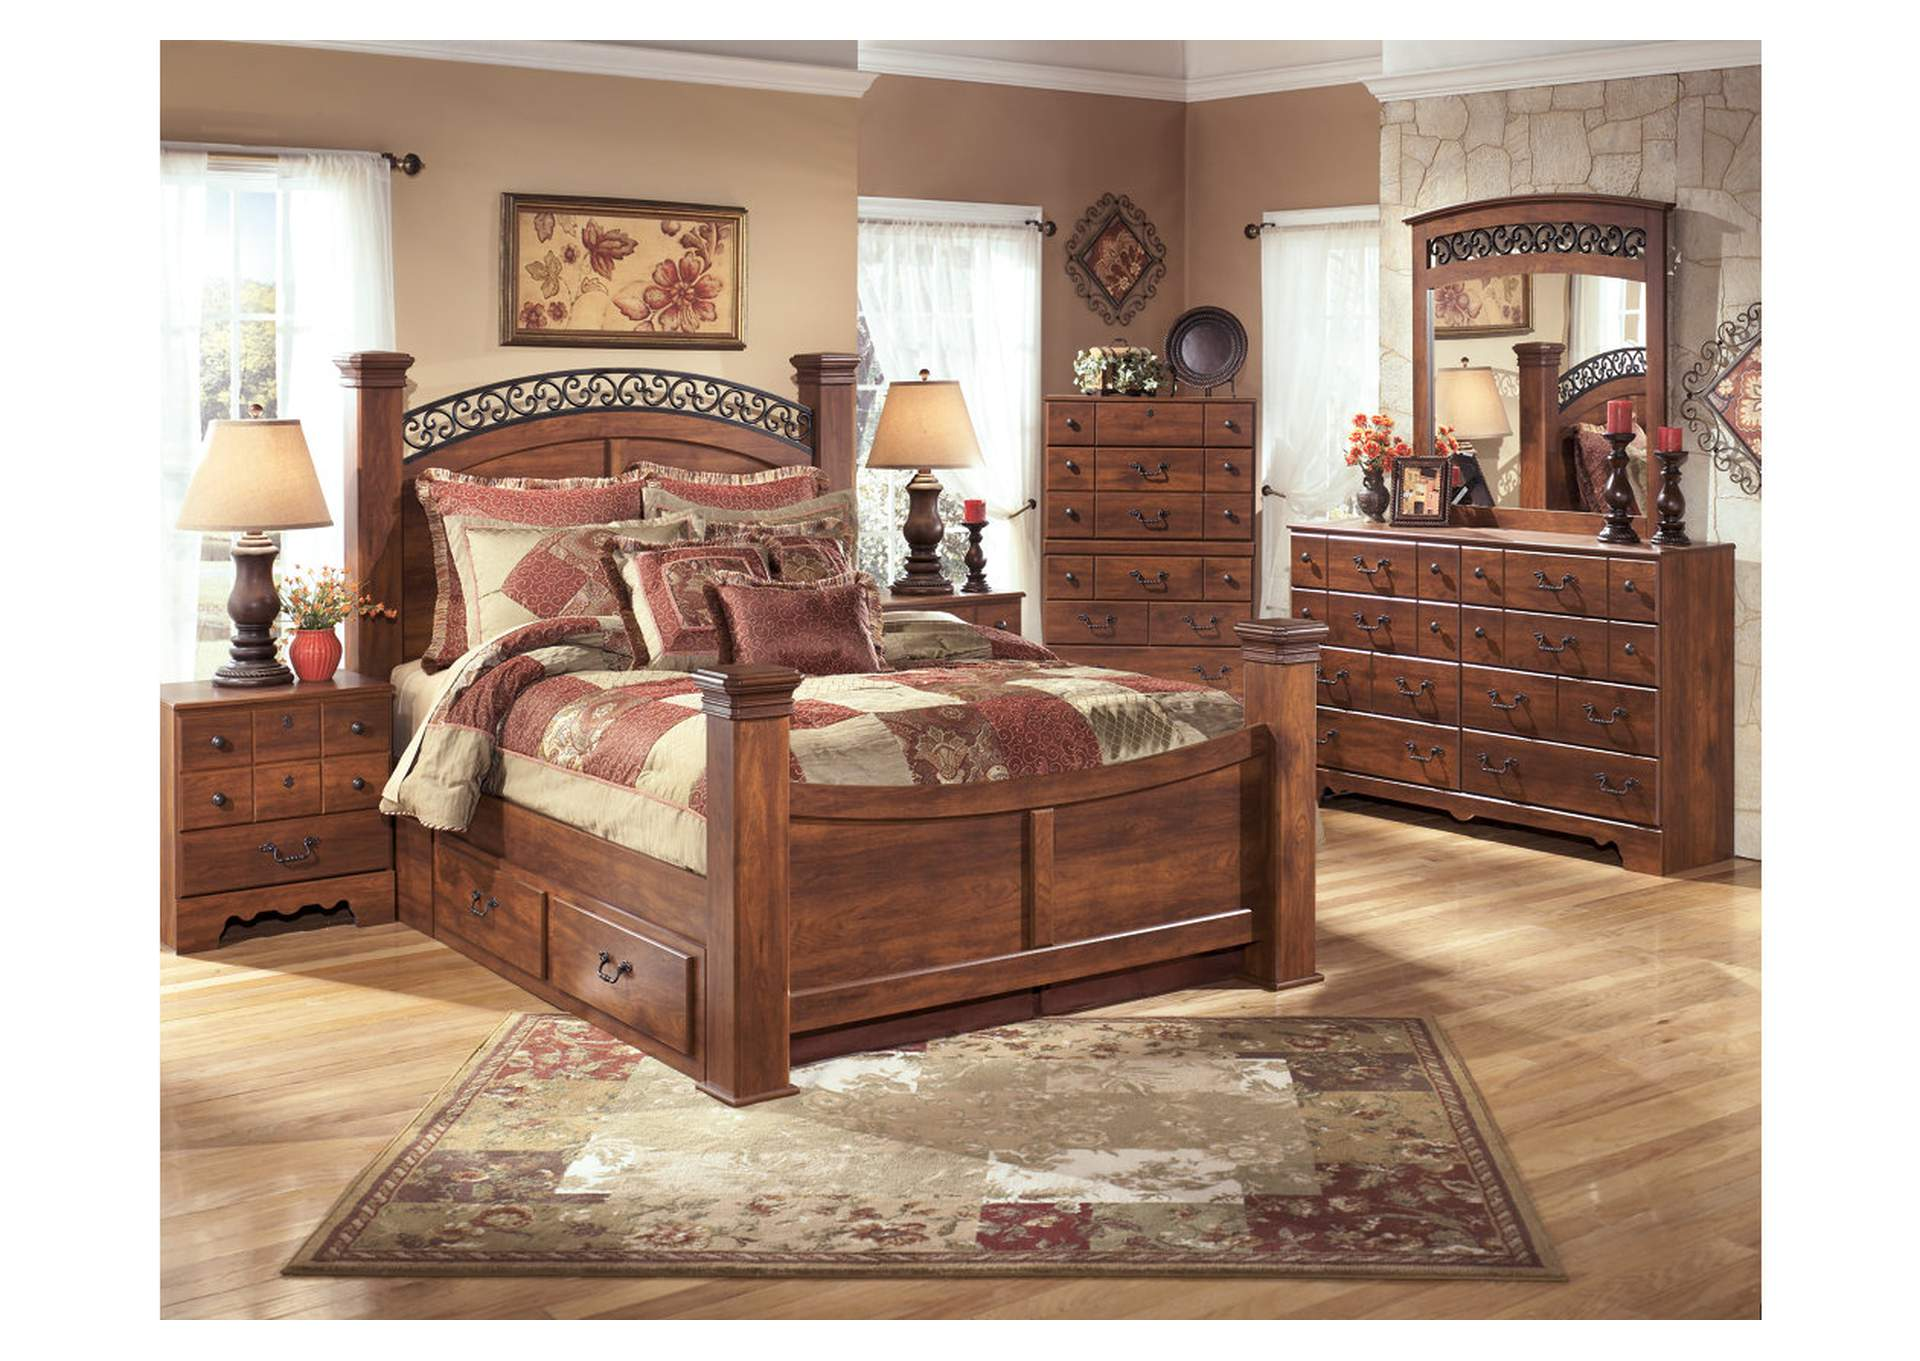 Timberline Queen Poster Storage Bed w/Dresser & Mirror,Signature Design By Ashley